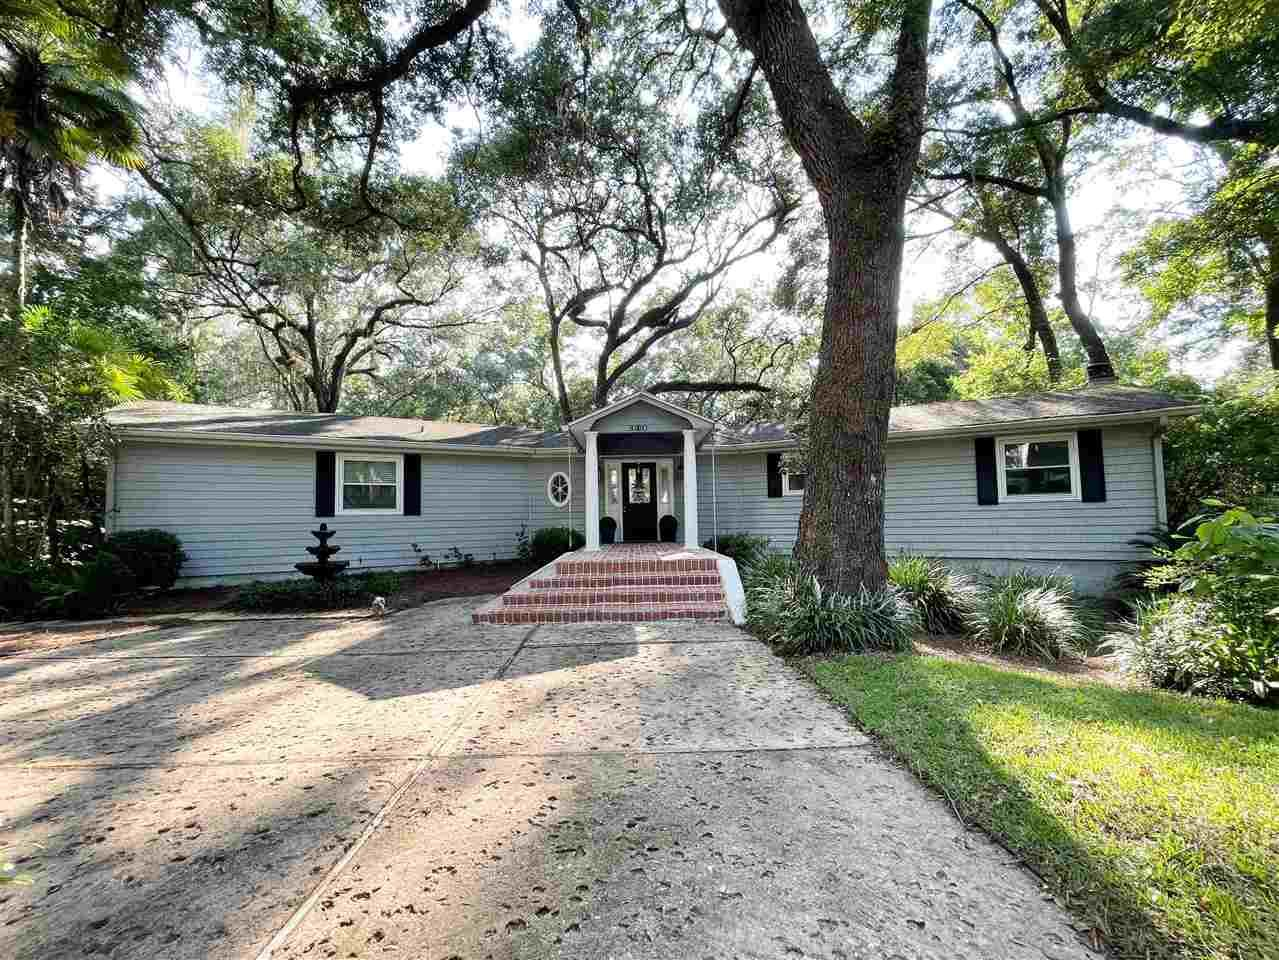 Photo of 3920 Leane Dr, TALLAHASSEE, FL 32309 (MLS # 335510)